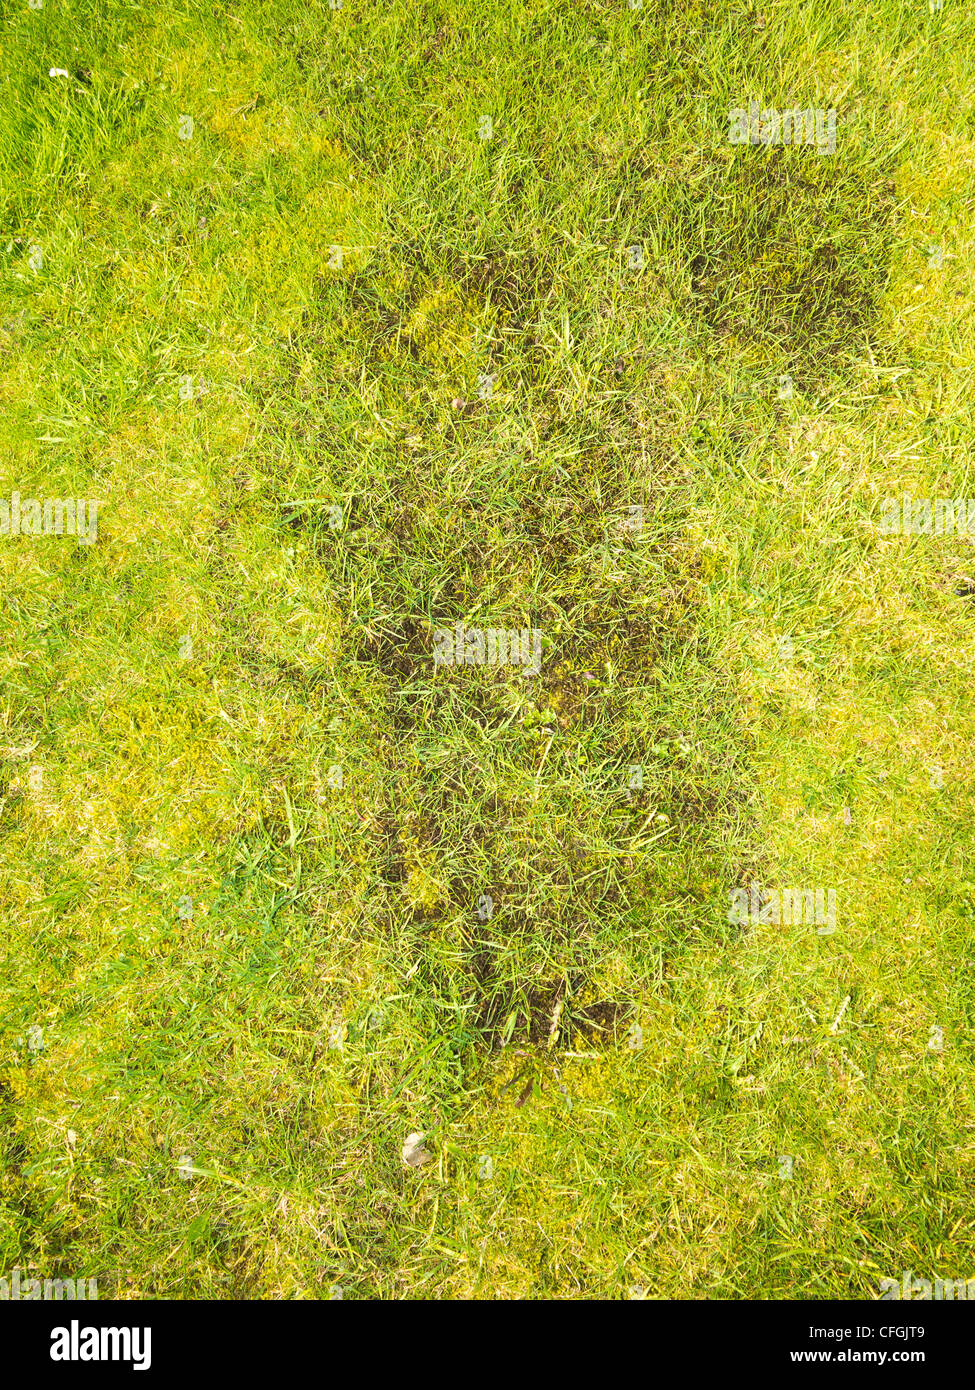 Moss in lawn blackened by mosskiller - Stock Image